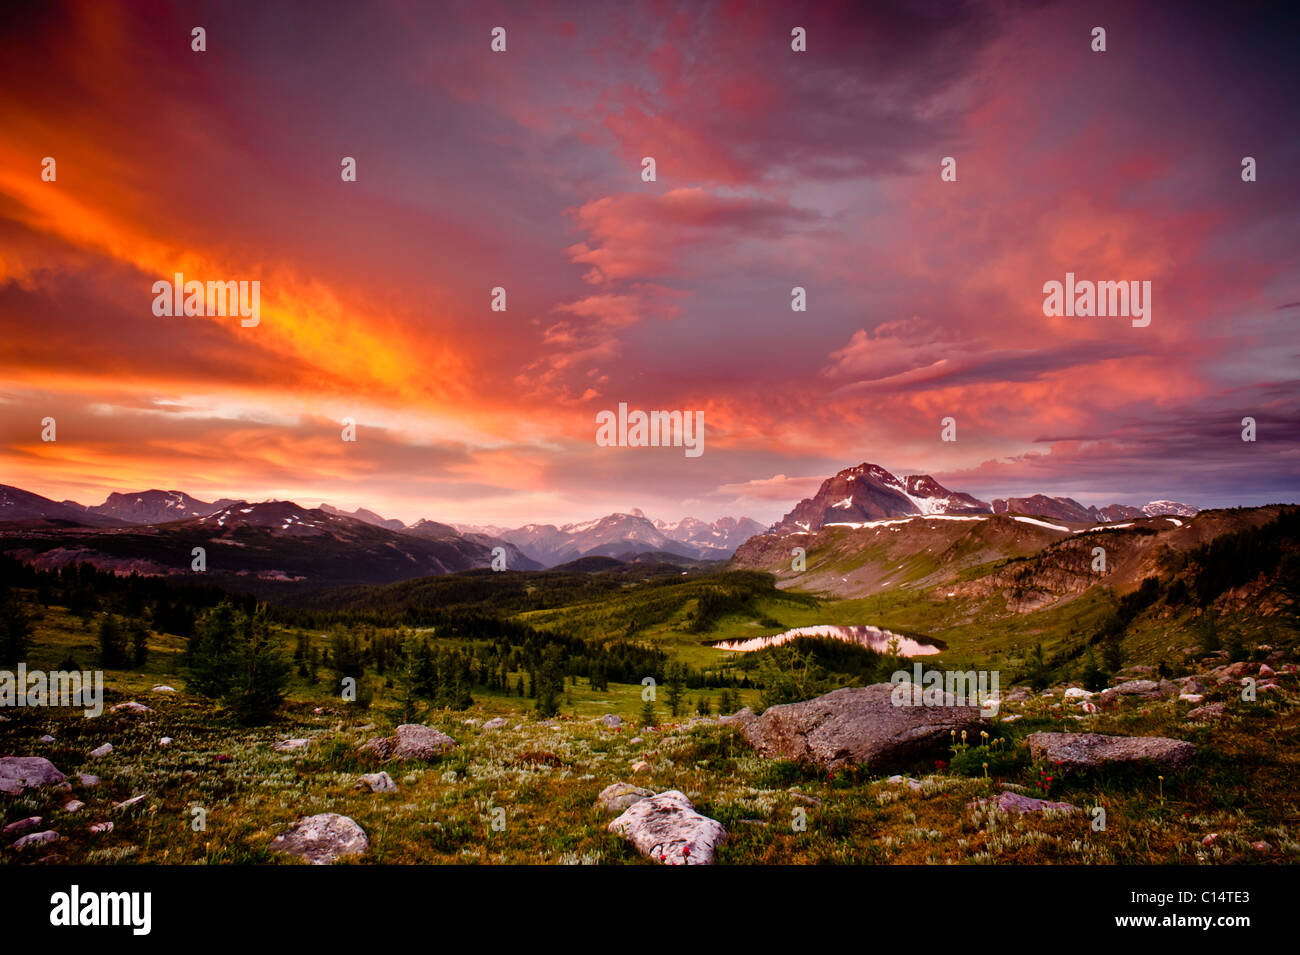 Sunrise from a ridge overlooking a mountain valley.  Banff National Park, Alberta, Canada. Stock Photo